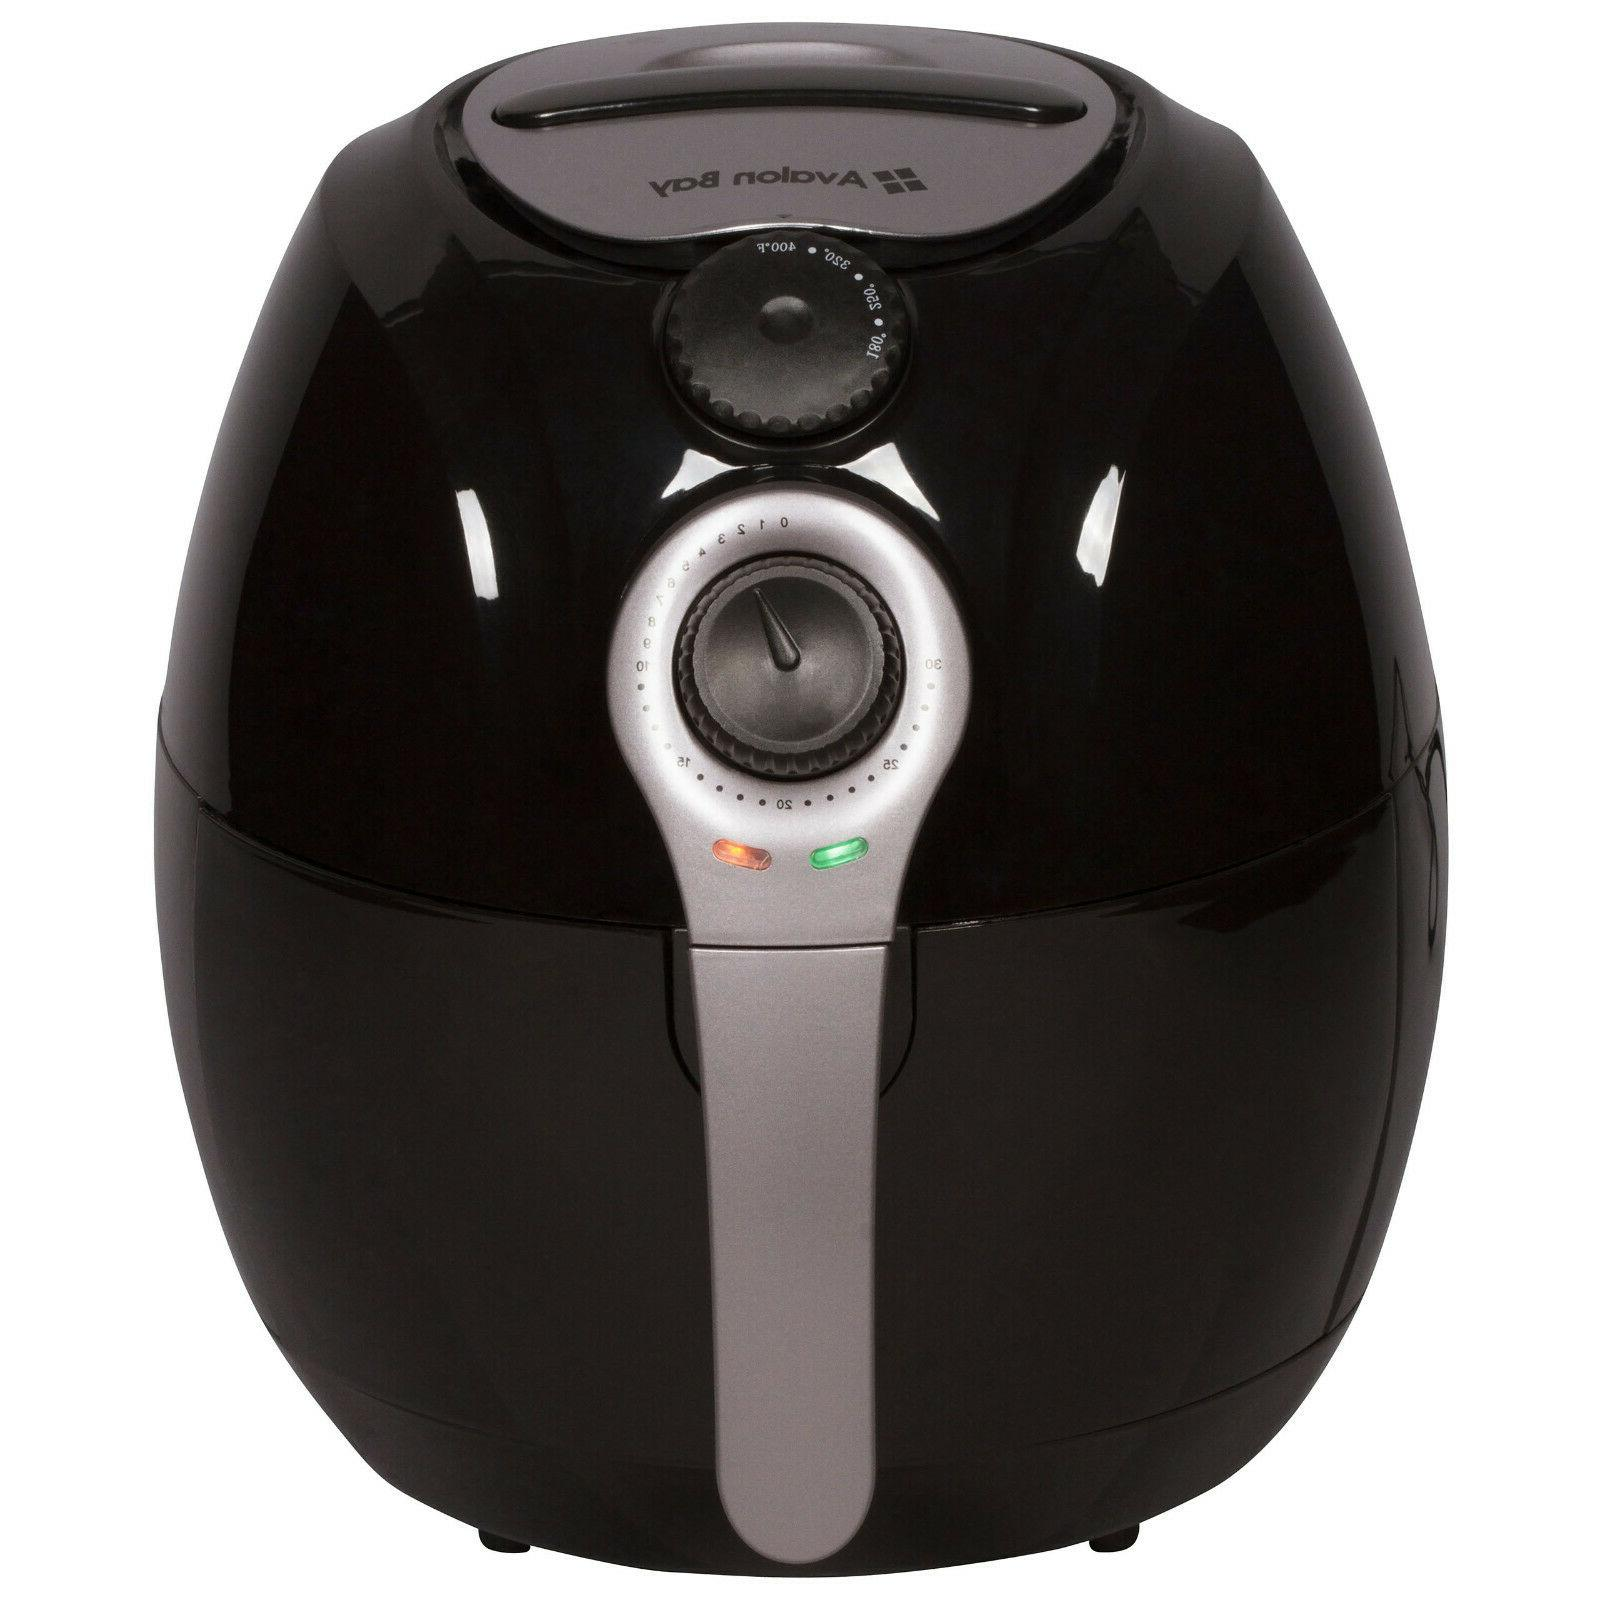 airfryer manual oilless electric 3 7 quart